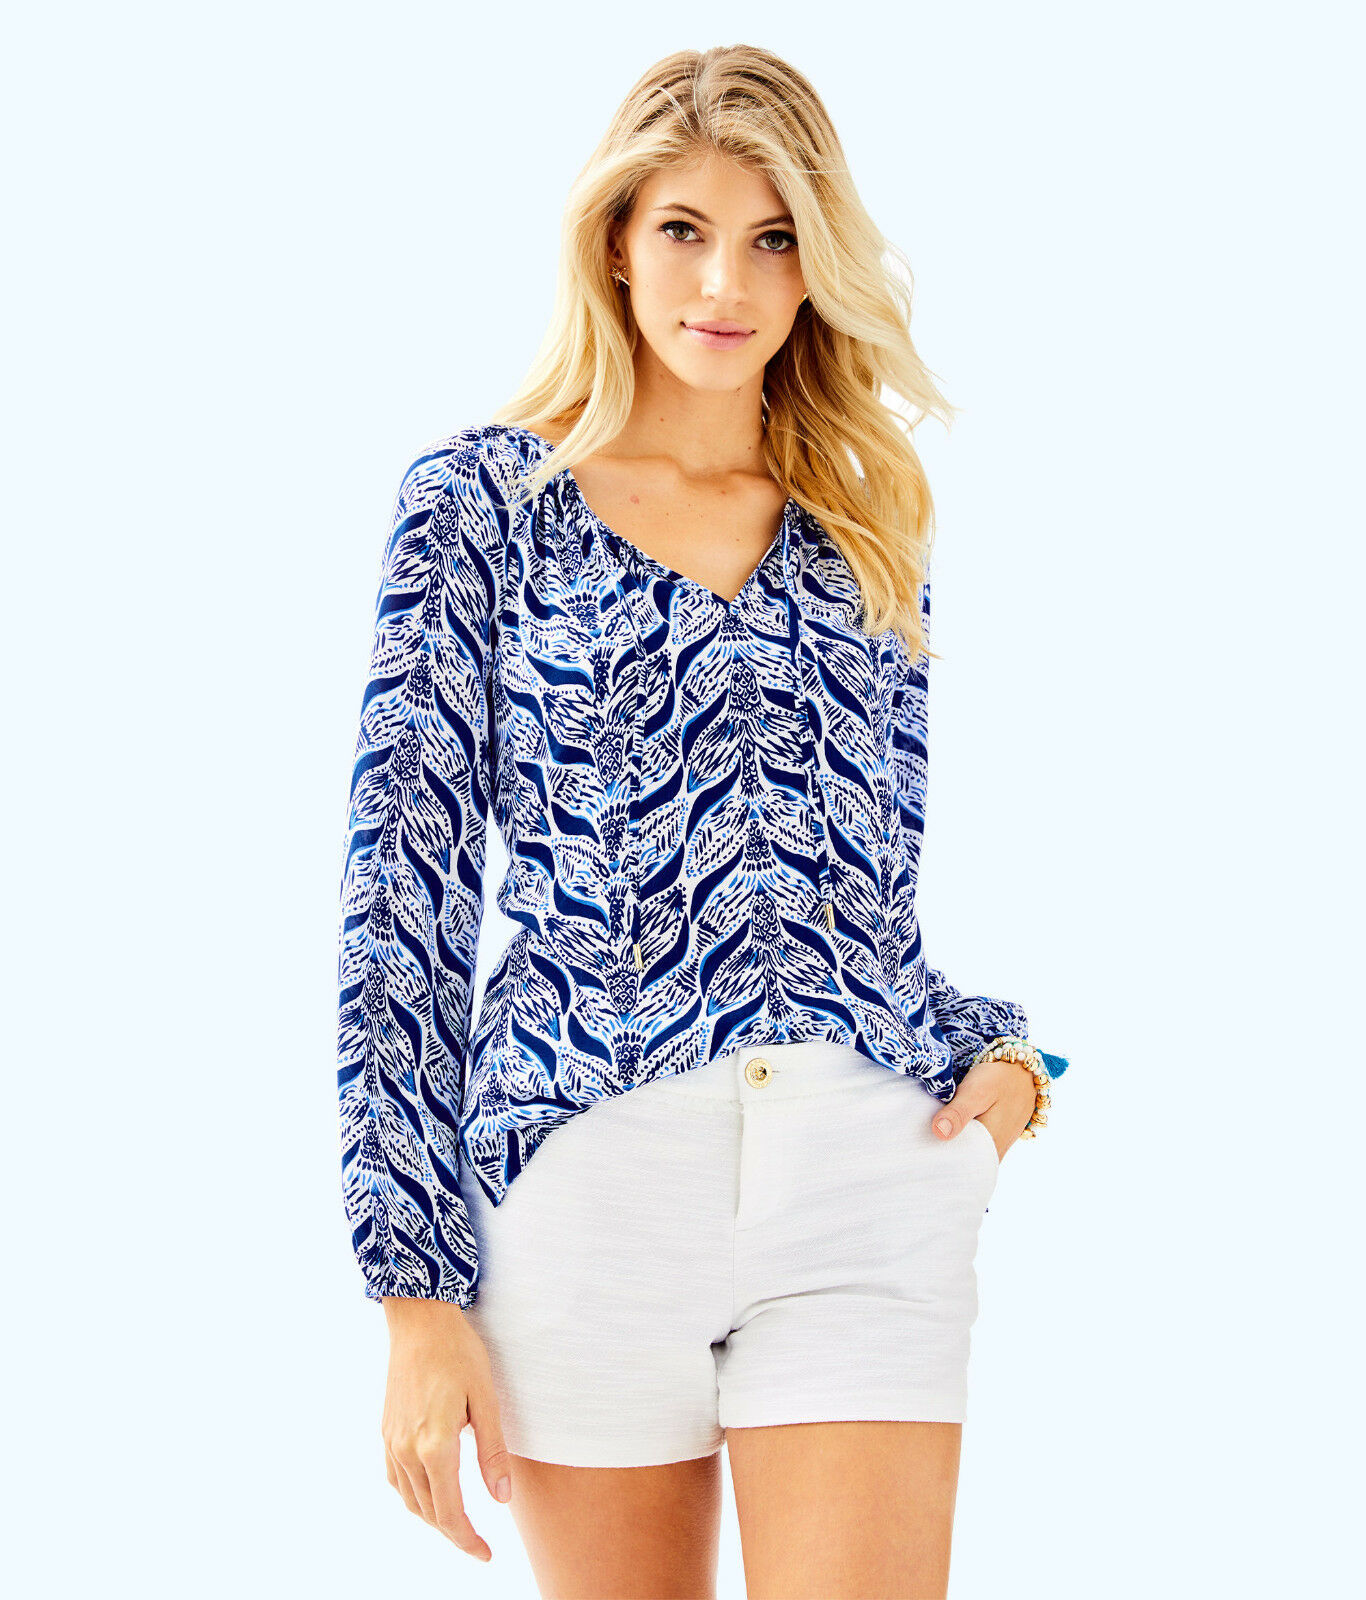 Lilly Pulitzer NWT Willa Tunic Blouse Resort Weiß A Mermaids Tail